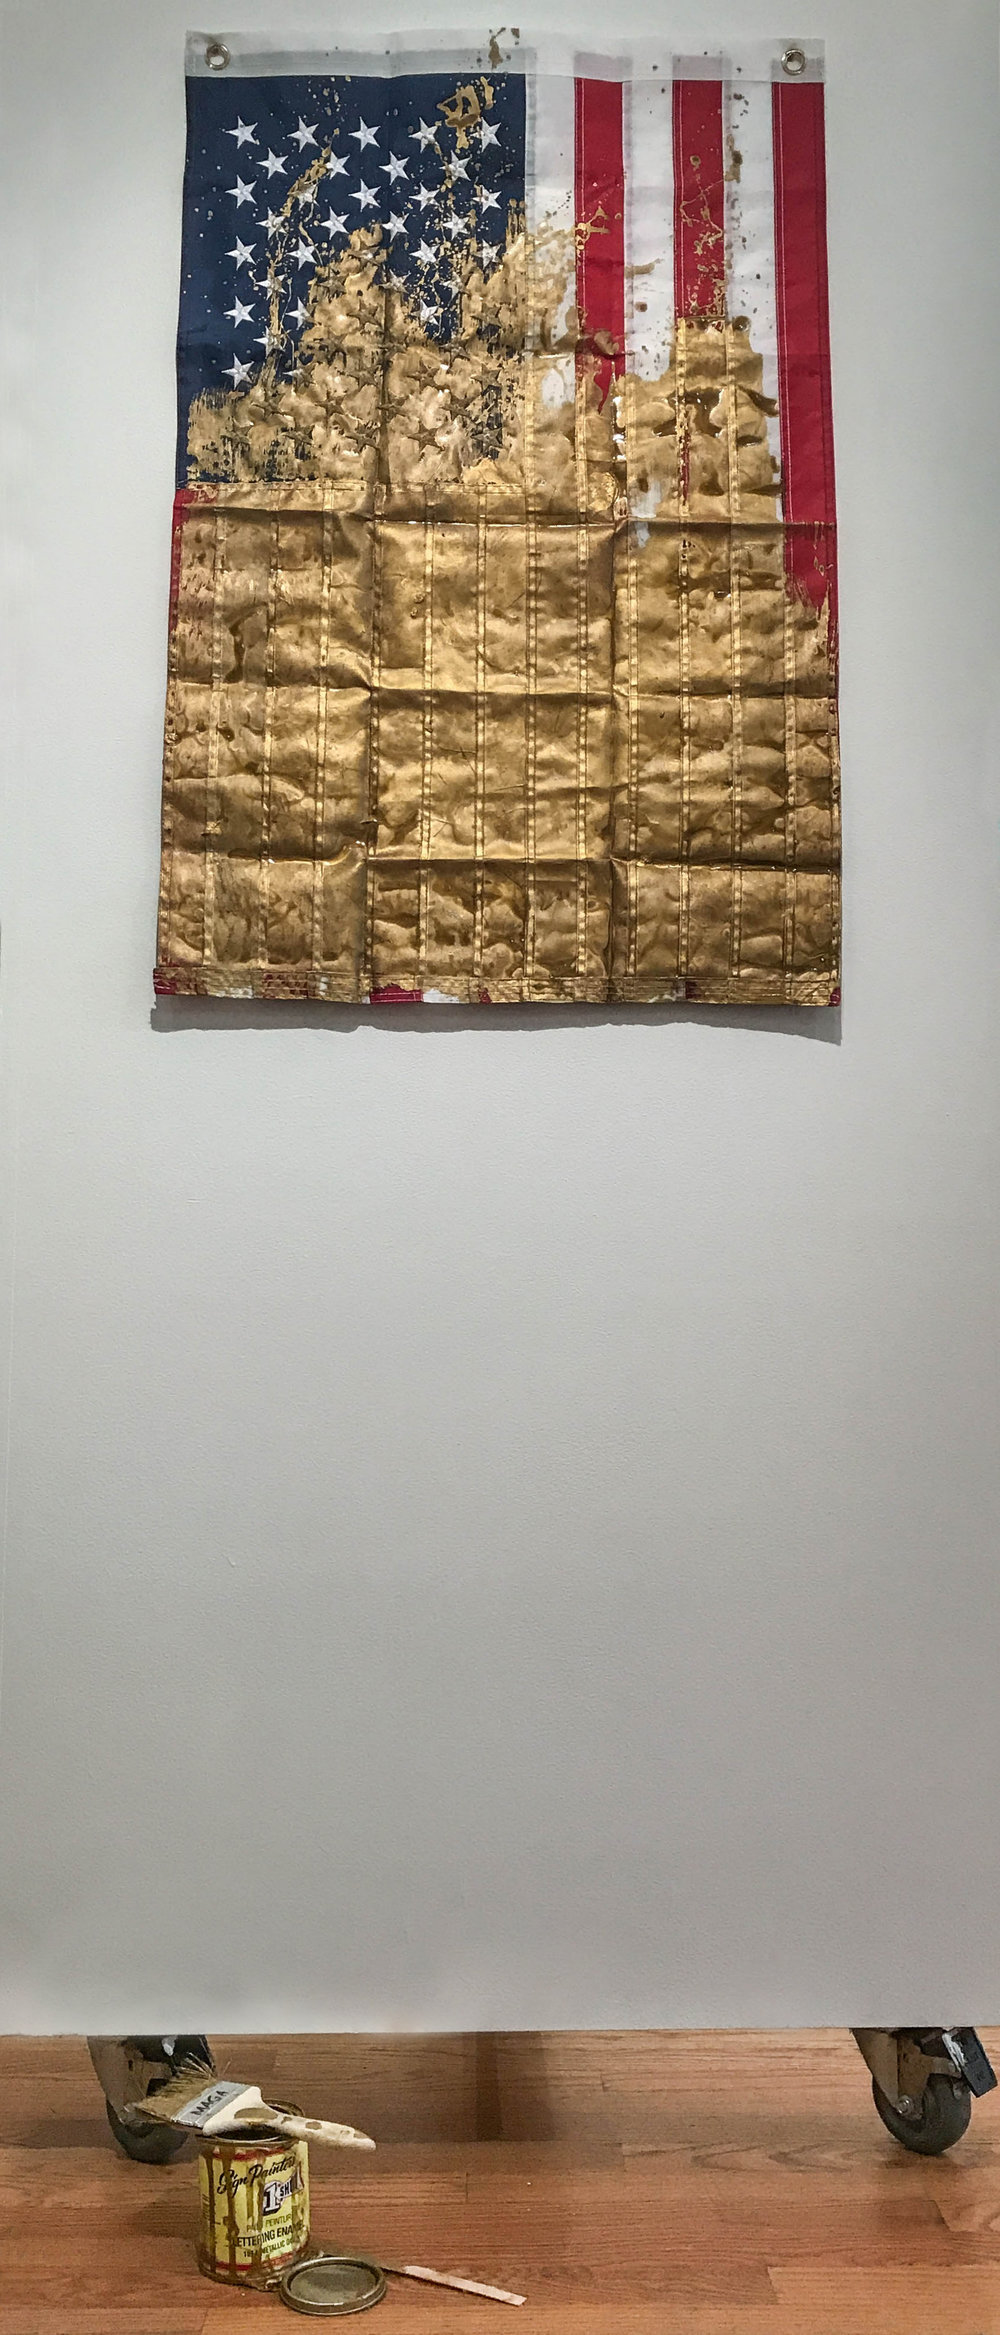 "MAGA Flag , rip-stop nylon, enamel, and mixed media, 76"" x 24"" x 4"", $500"